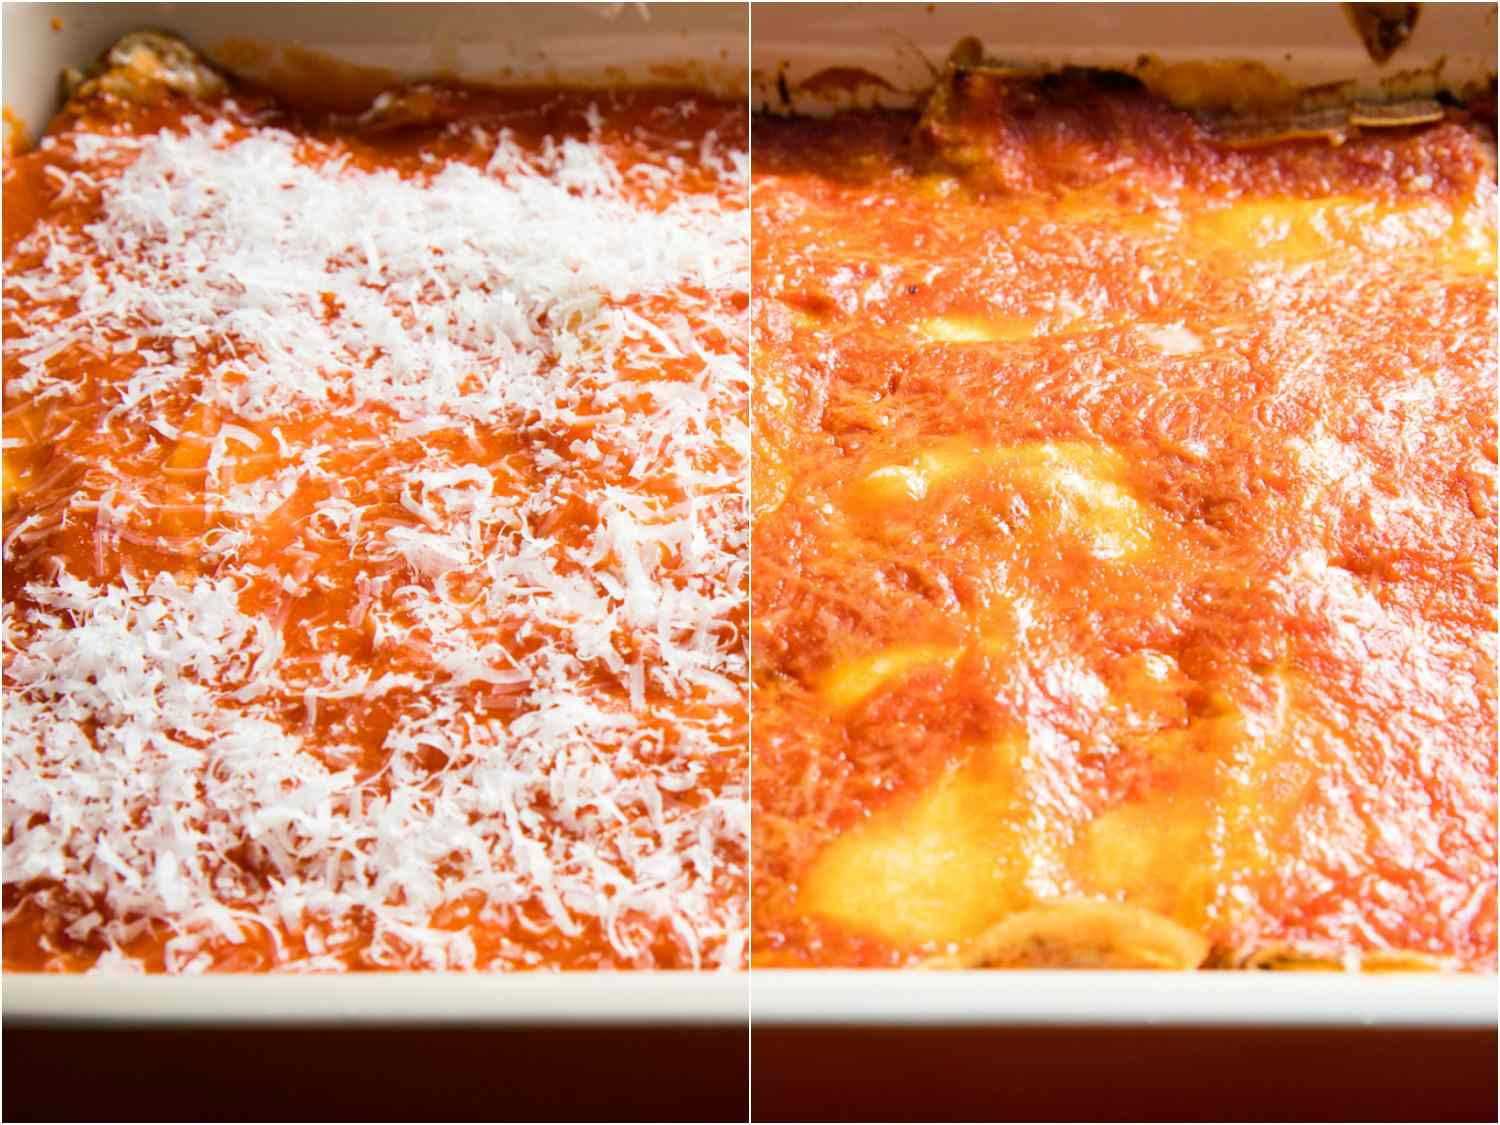 20160921-manicotti-crepe-vicky-wasik-before-after.jpg